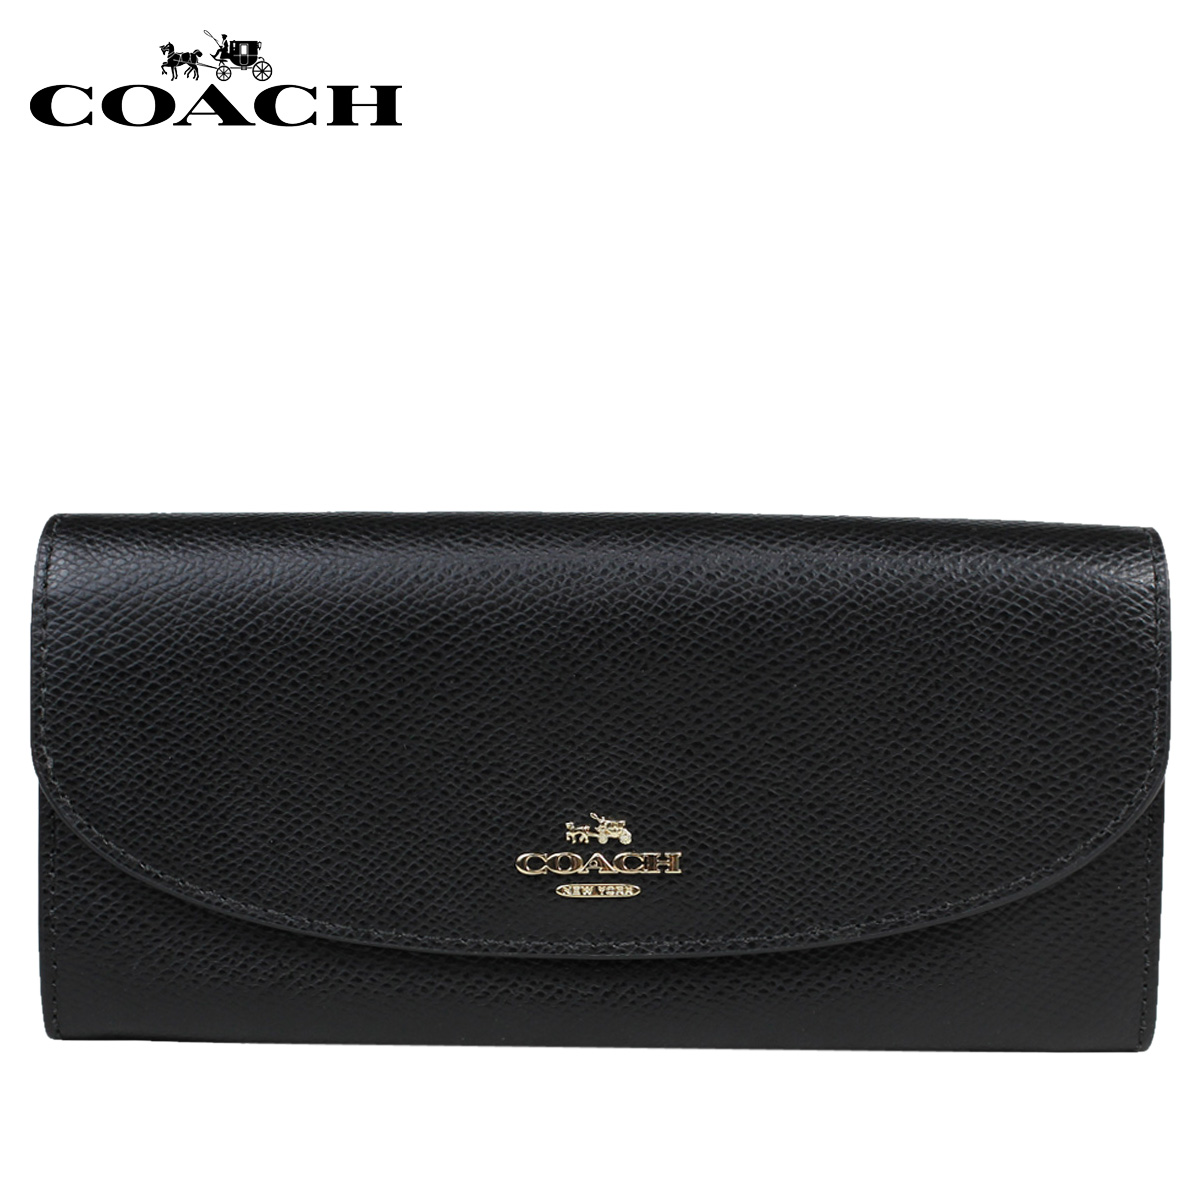 34eaedd5e08dc Sugar Online Shop: COACH coach wallet long wallet F54009 black black ...